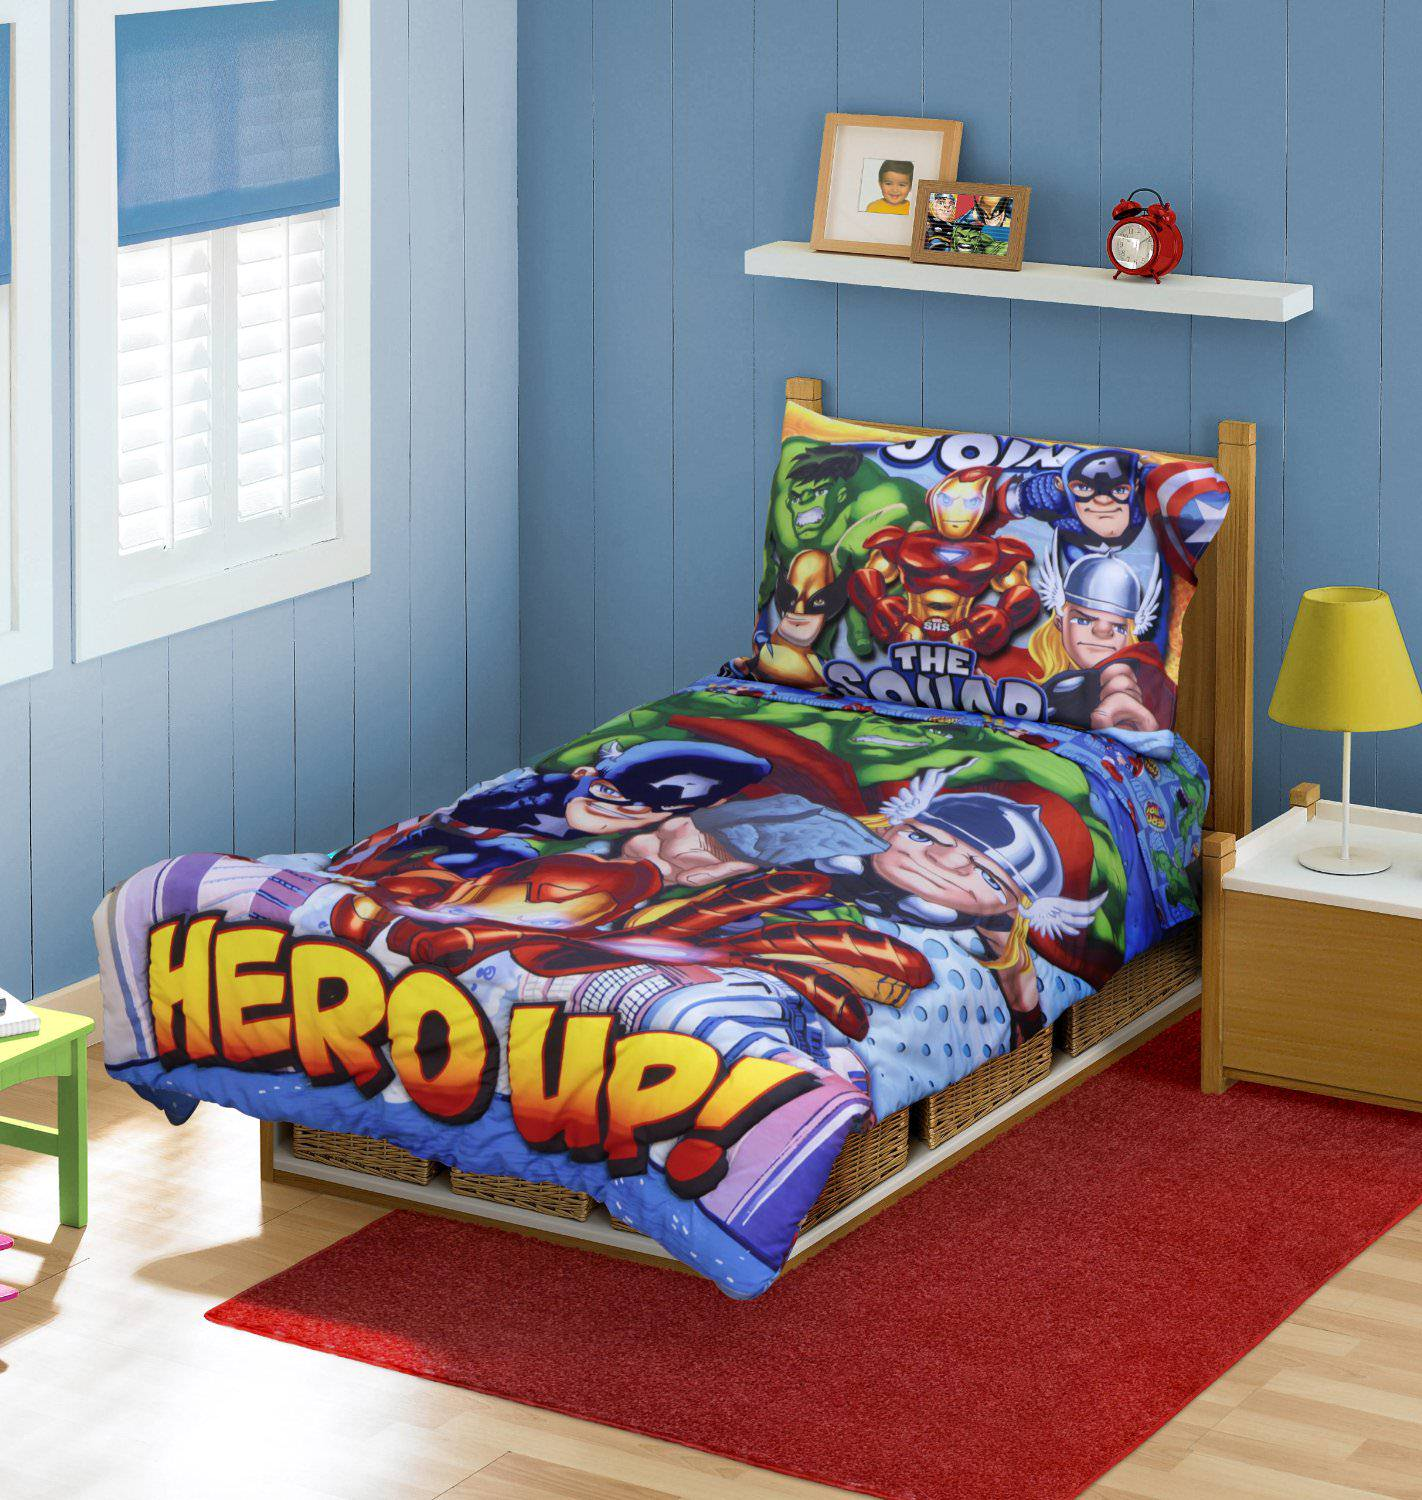 Avengers bedding set twin - Featured Image Of Super Avengers Bedding For The Kids Bedroom